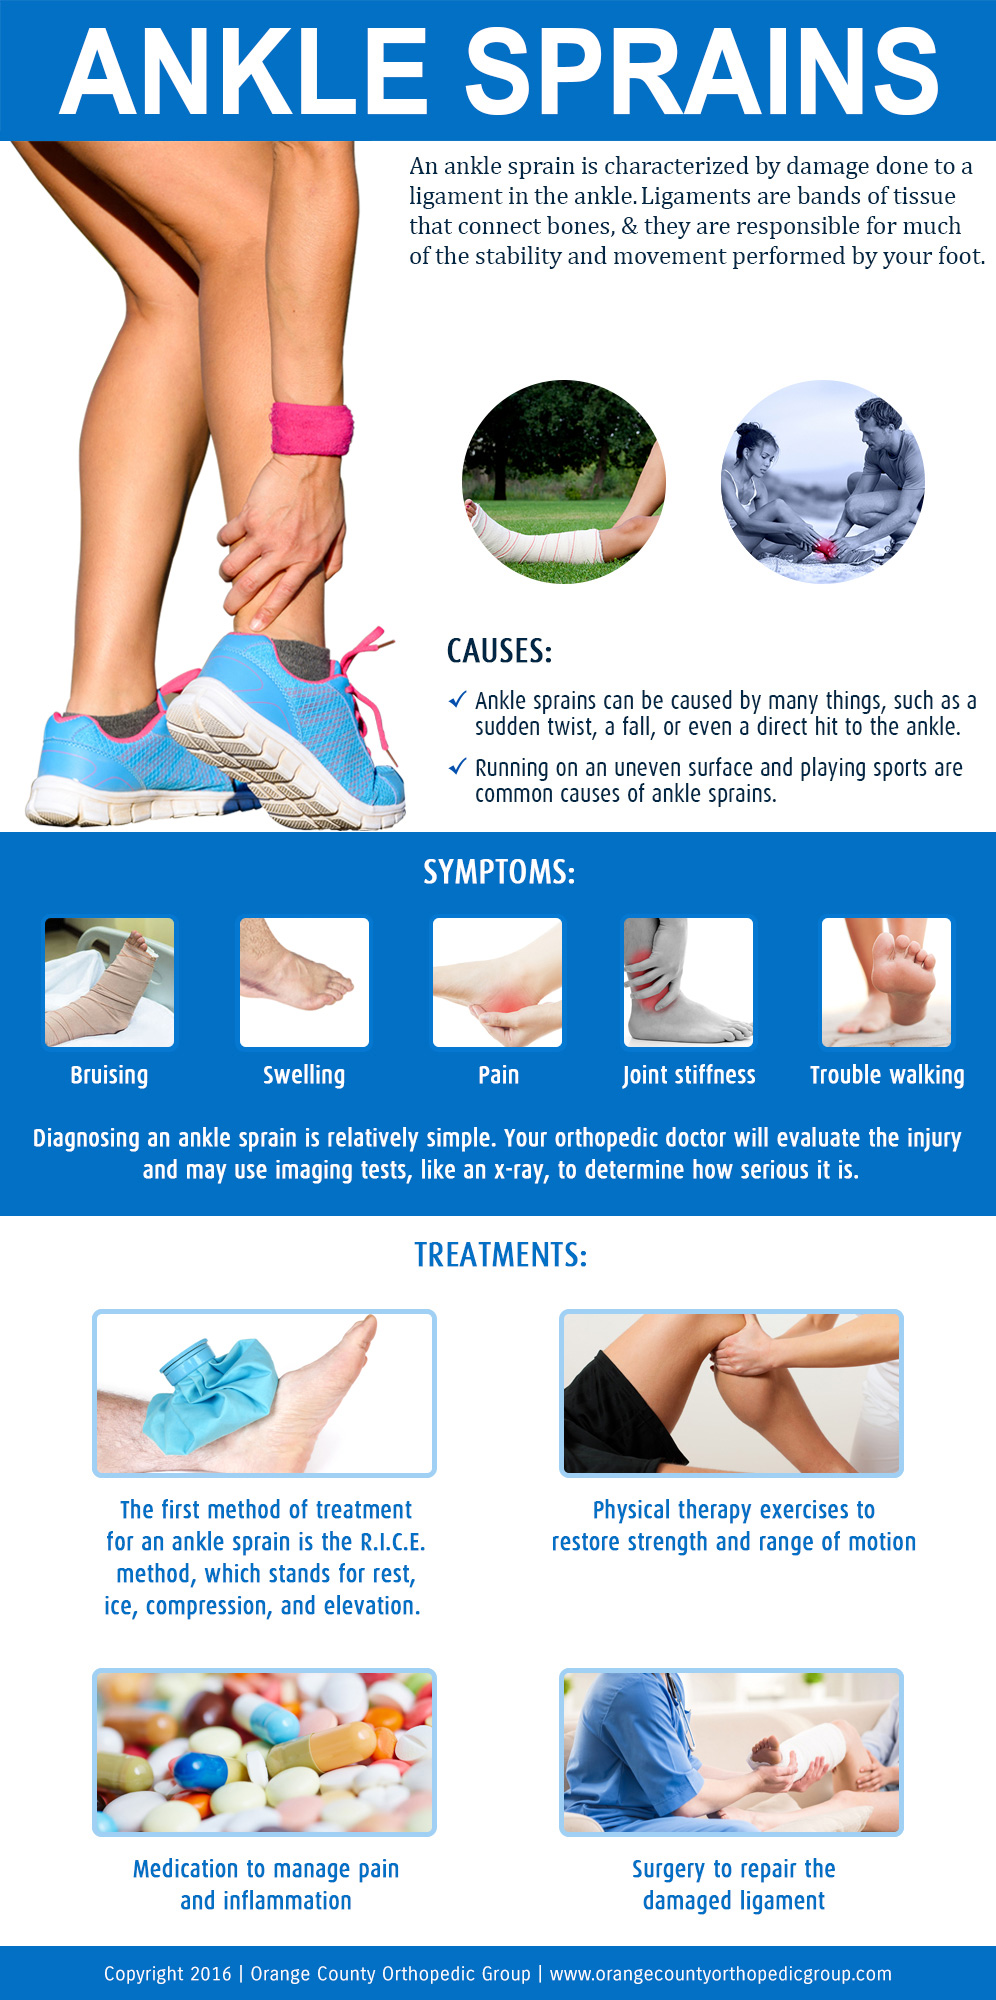 Ankle-Sprains-Orange-County-Orthopedic-Surgeons1-infographic-plaza